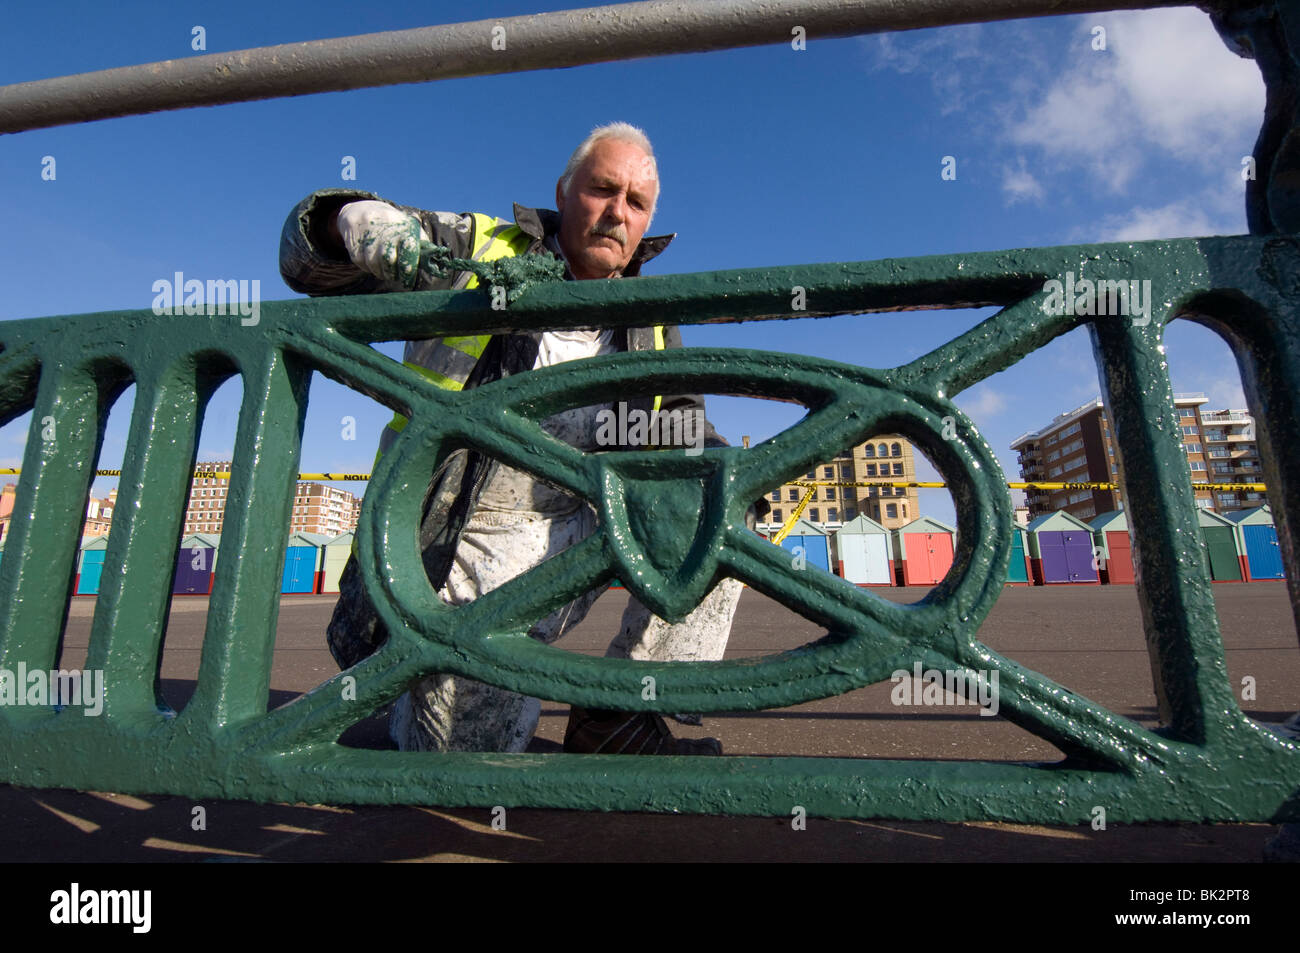 An older man painting the cast iron railings along the seafront promenade of Brighton and Hove - Stock Image